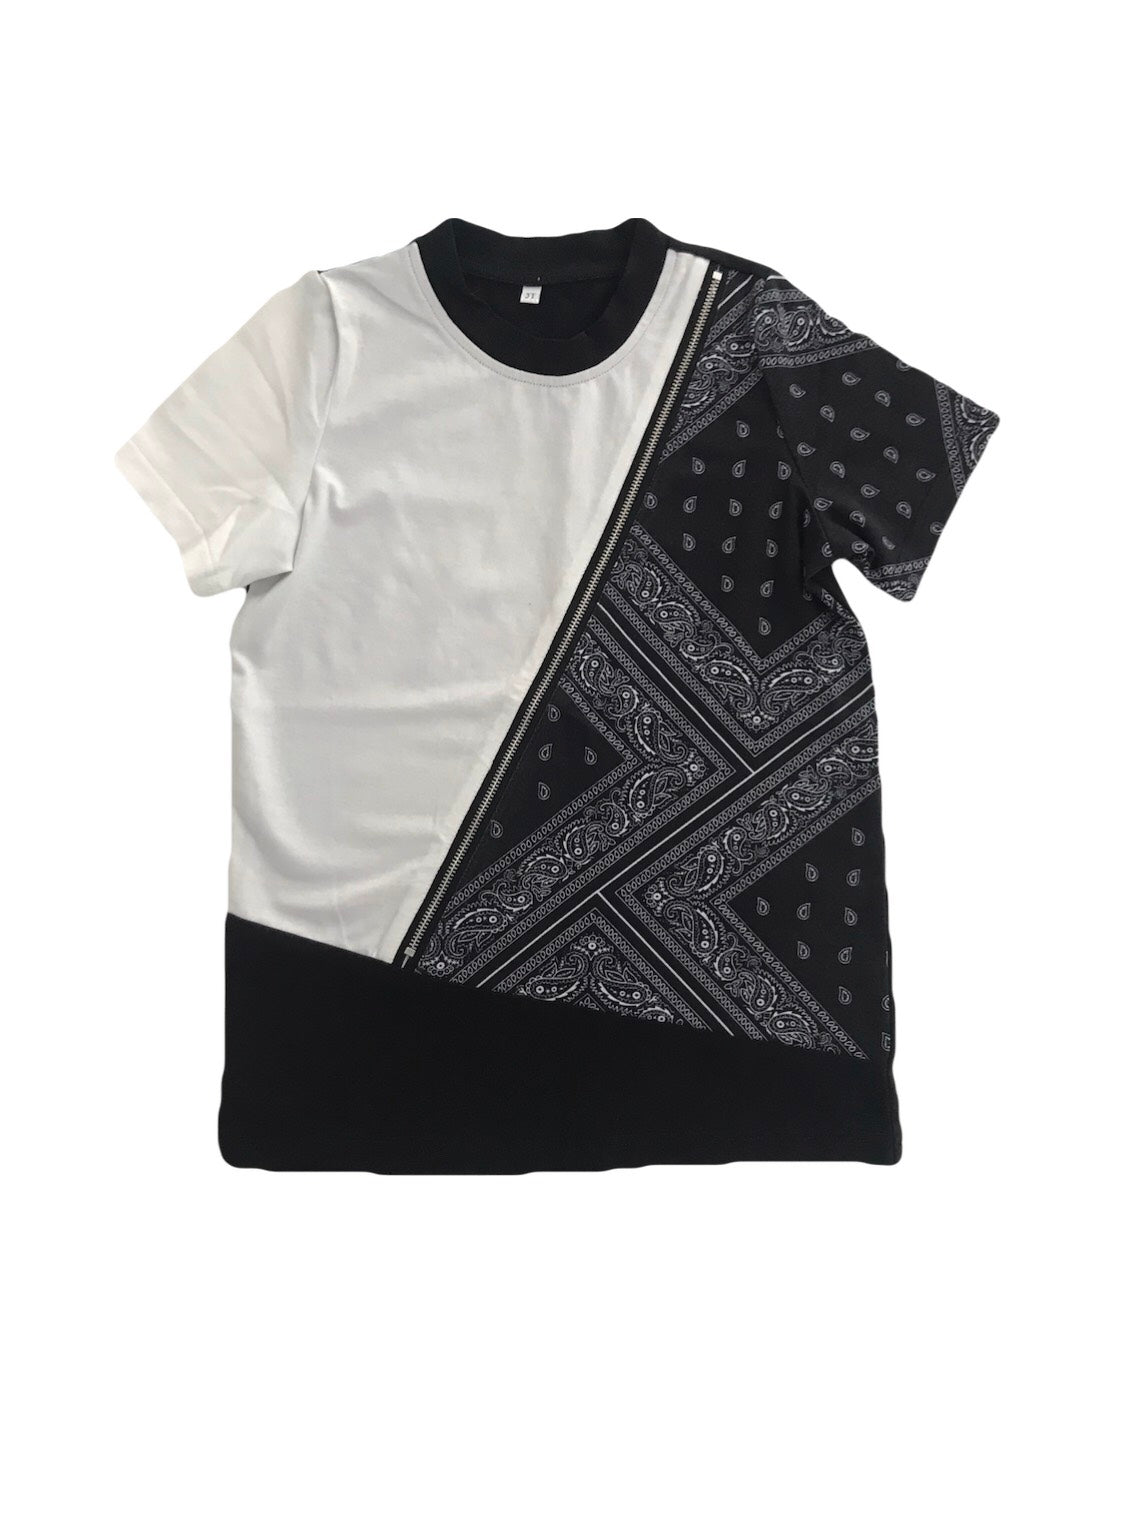 Kids bandana t shirt. Online kids affordable luxury streetwear clothing designed in Australia.